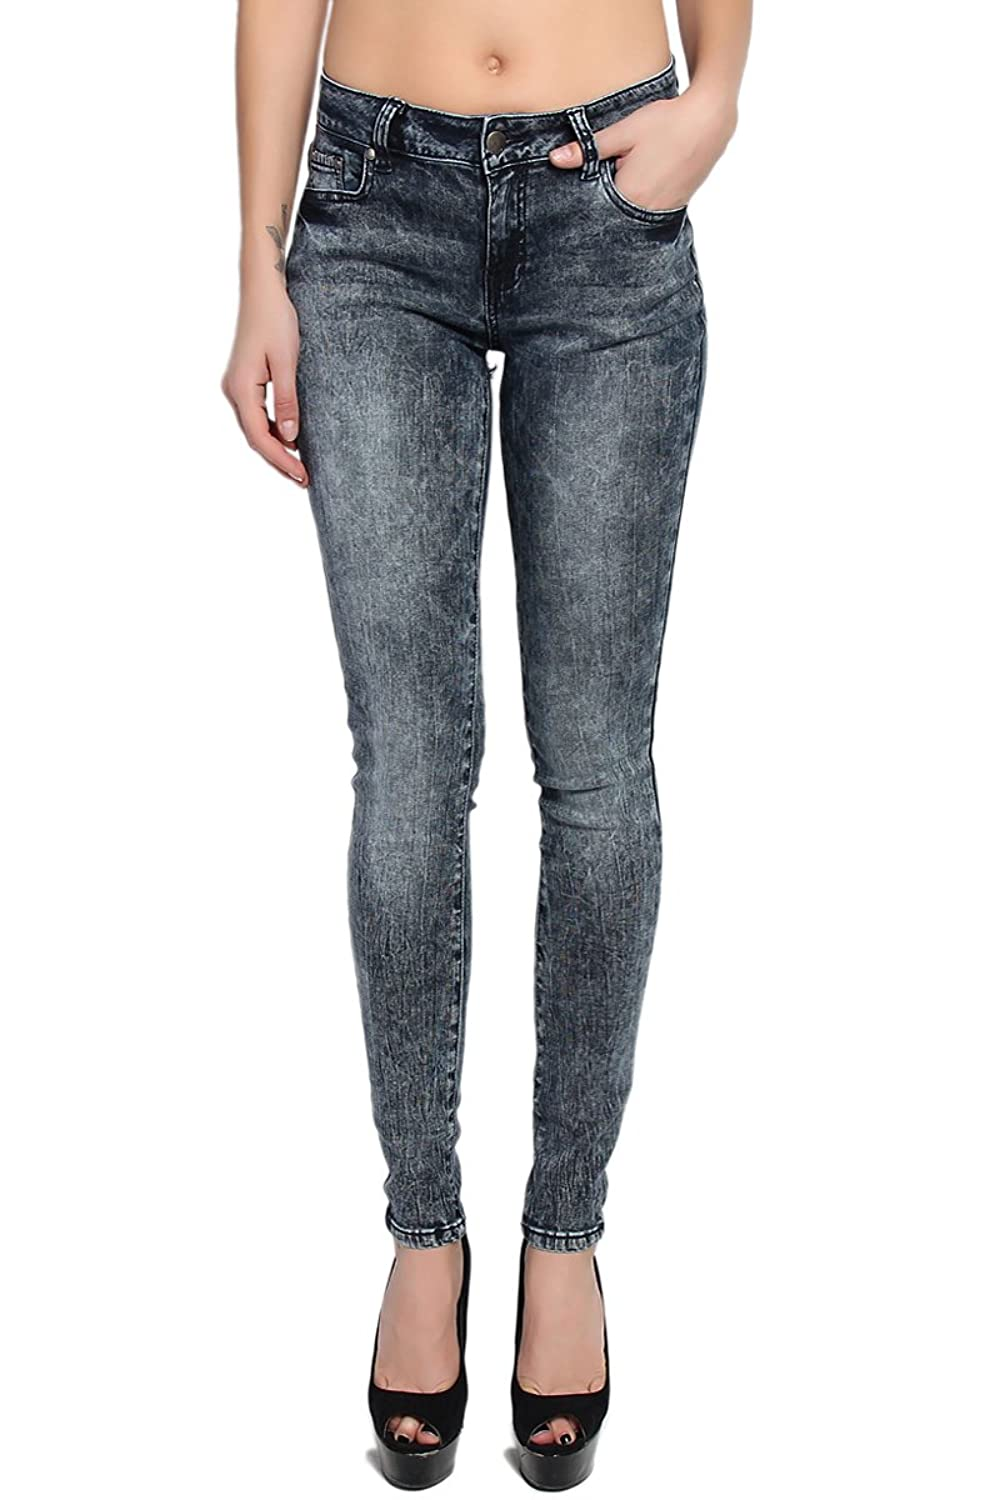 TheMogan Women's Dark Acid Wash Mid Rise Cloudy Ankle Skinny Jeans